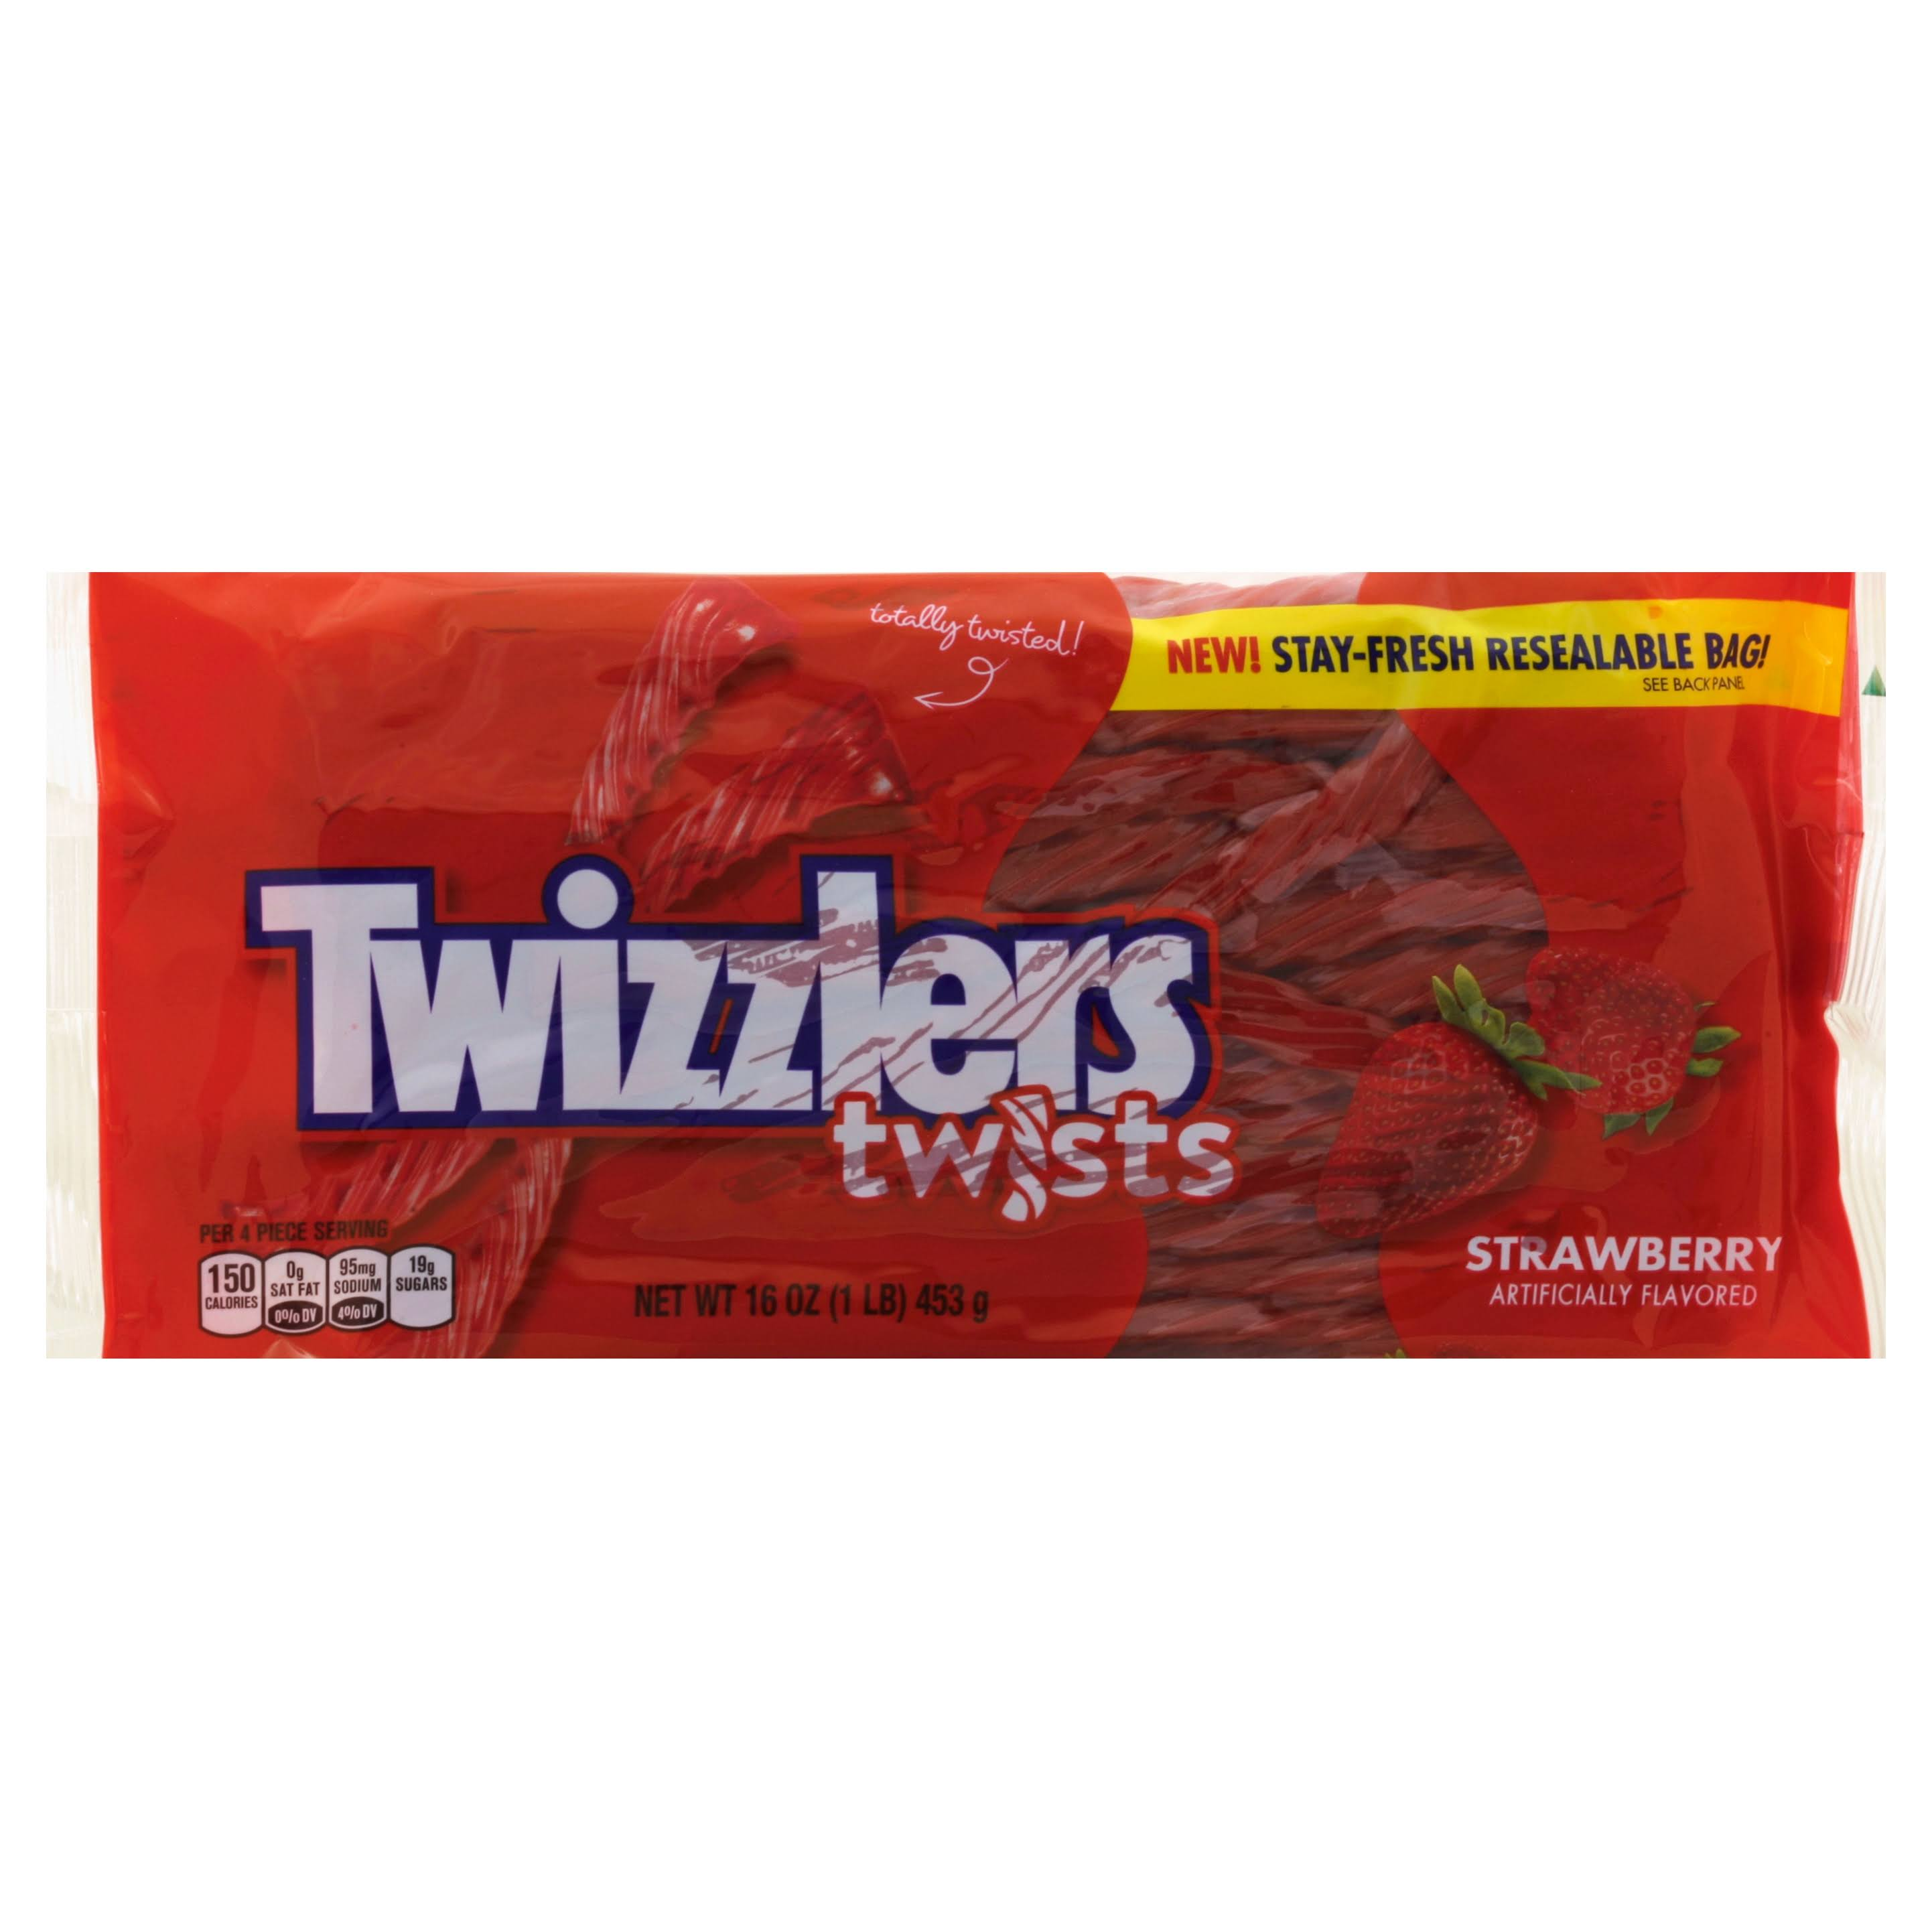 Twizzlers Twists Candy - 16oz